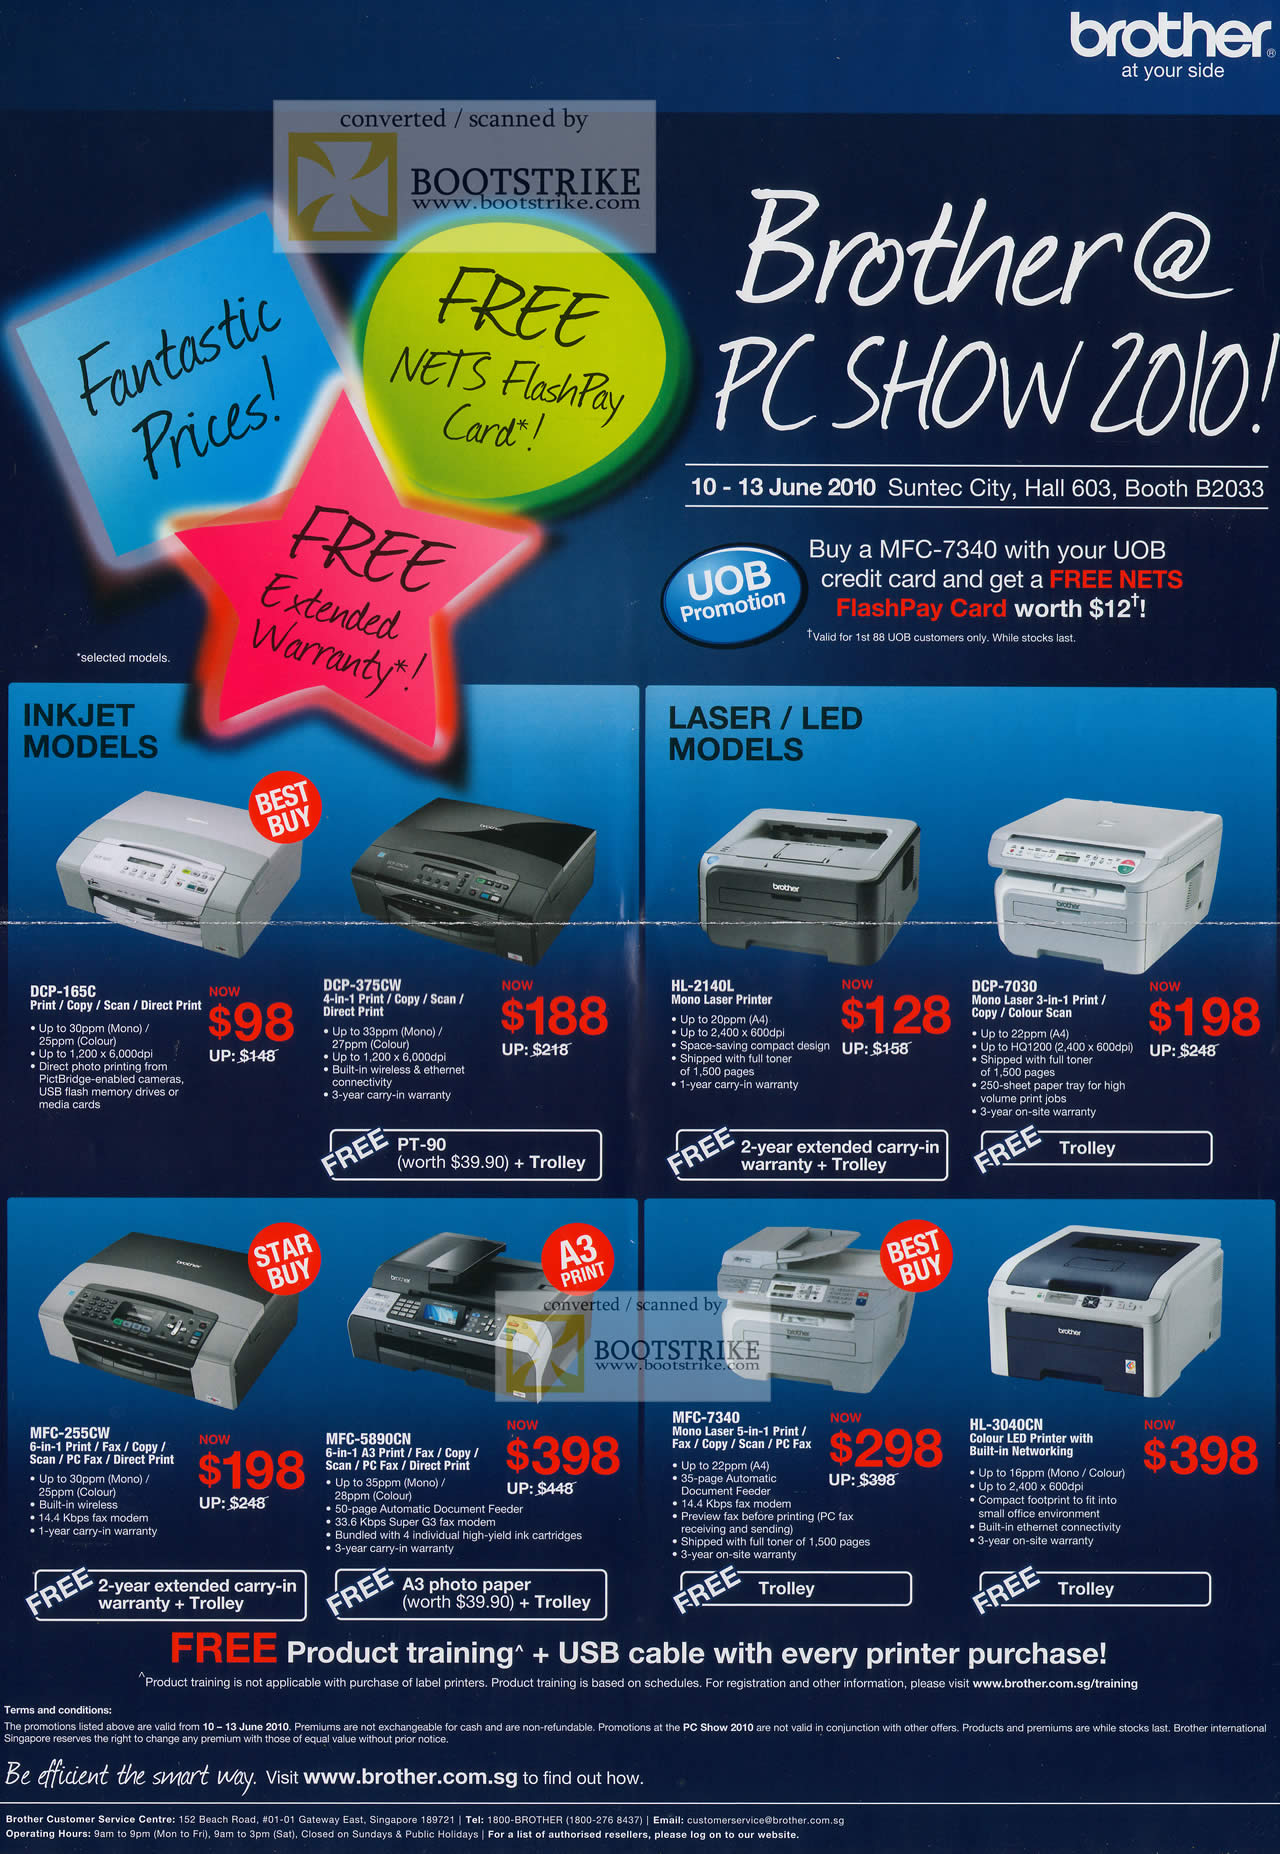 PC Show 2010 price list image brochure of Brother Printers Inkjet DCP 165C 375CW Laser HL 2140L 7030 MFC 255CW 5890CN 7340 3040N